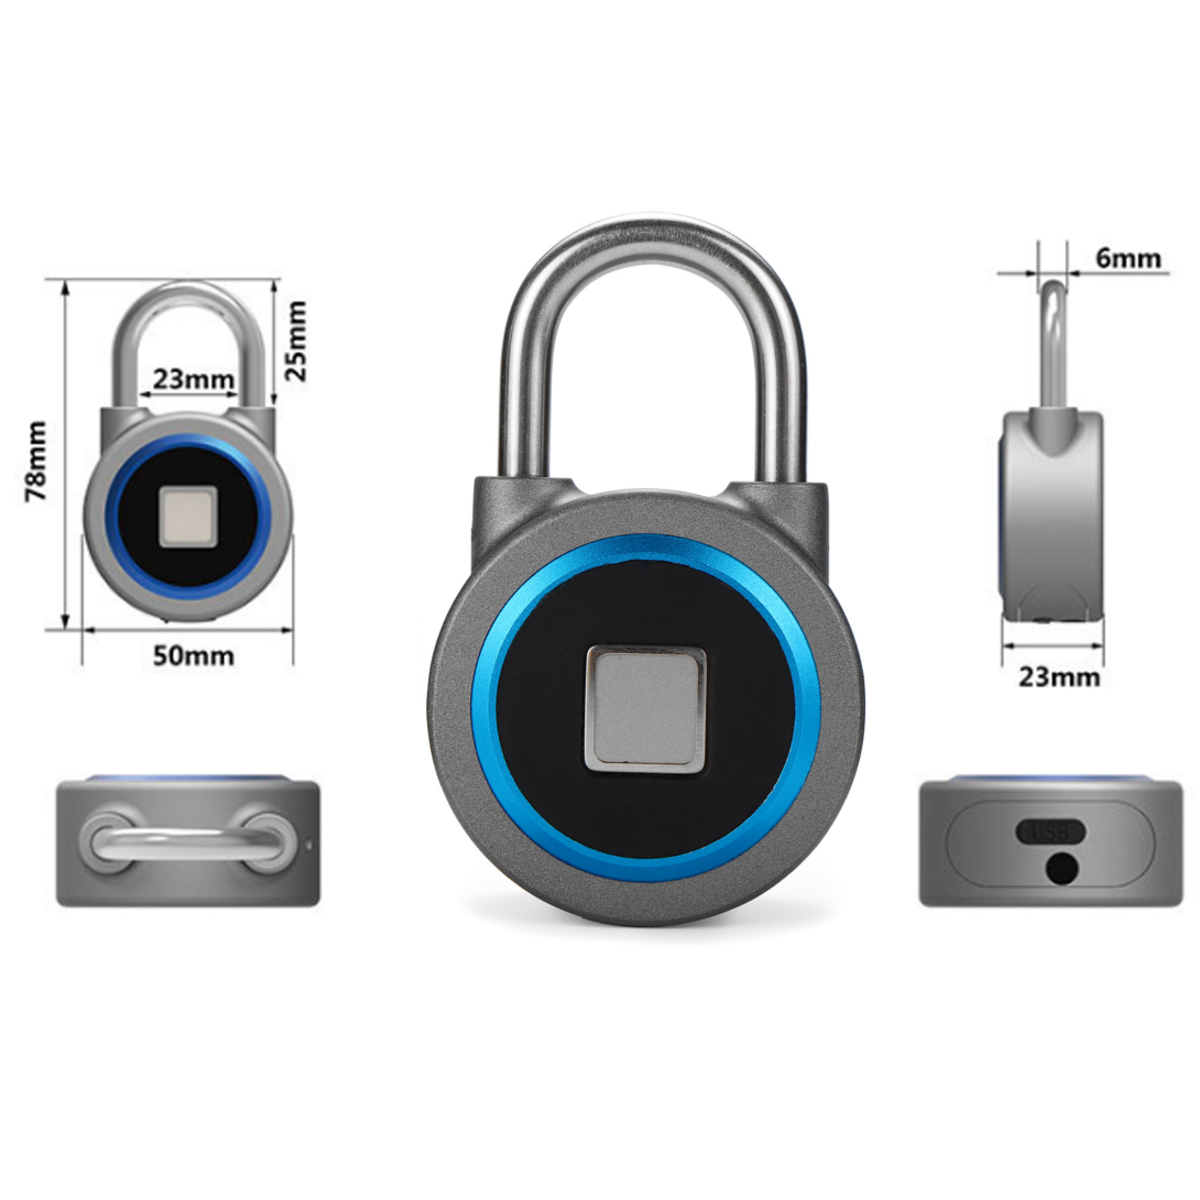 Fingerprint Recognition Bluetooth Keyless Lock – Waterproof 2